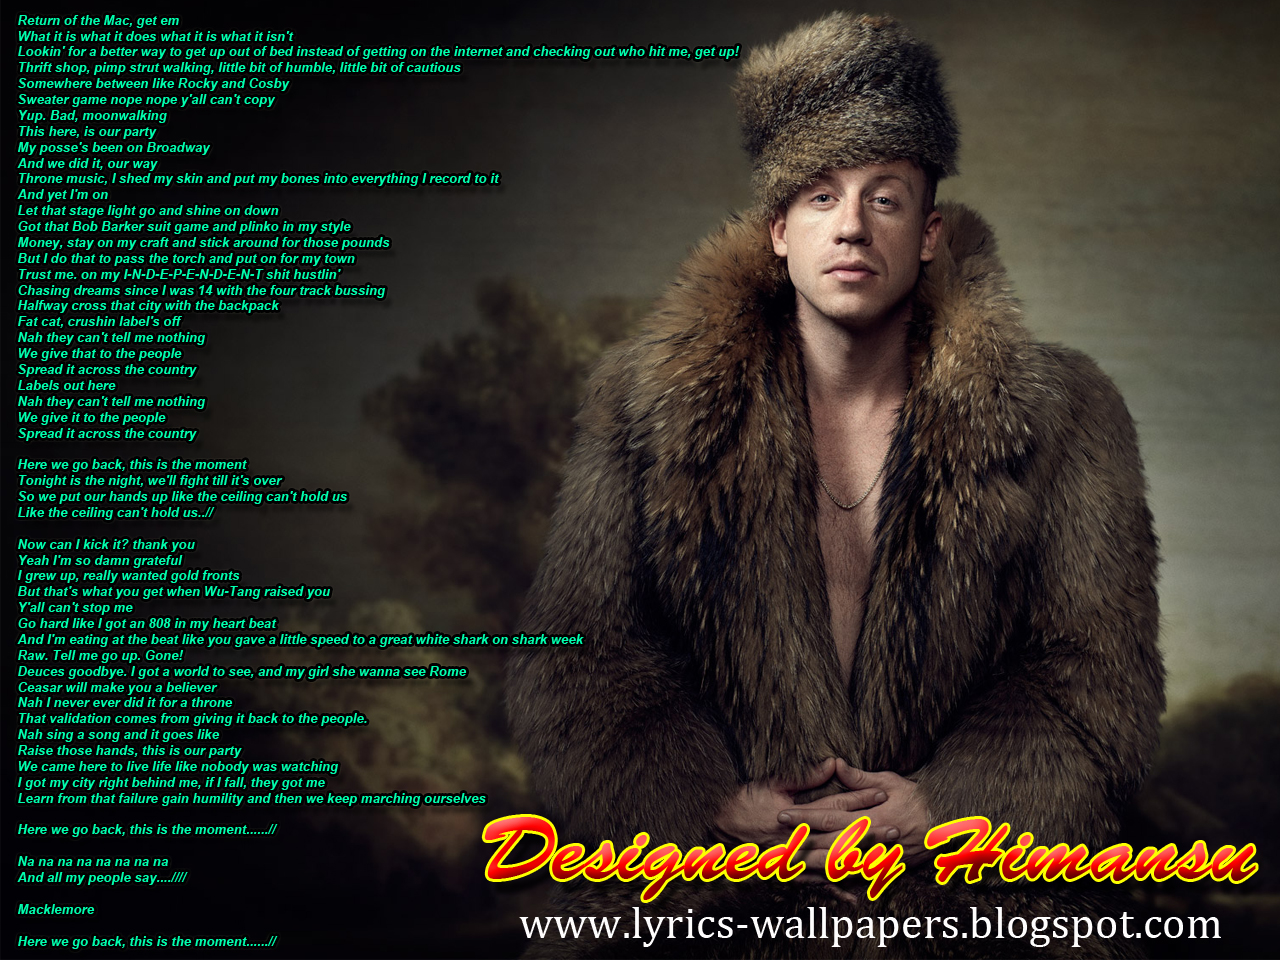 Lyrics Wallpapers: Macklemore - Can't Hold Us